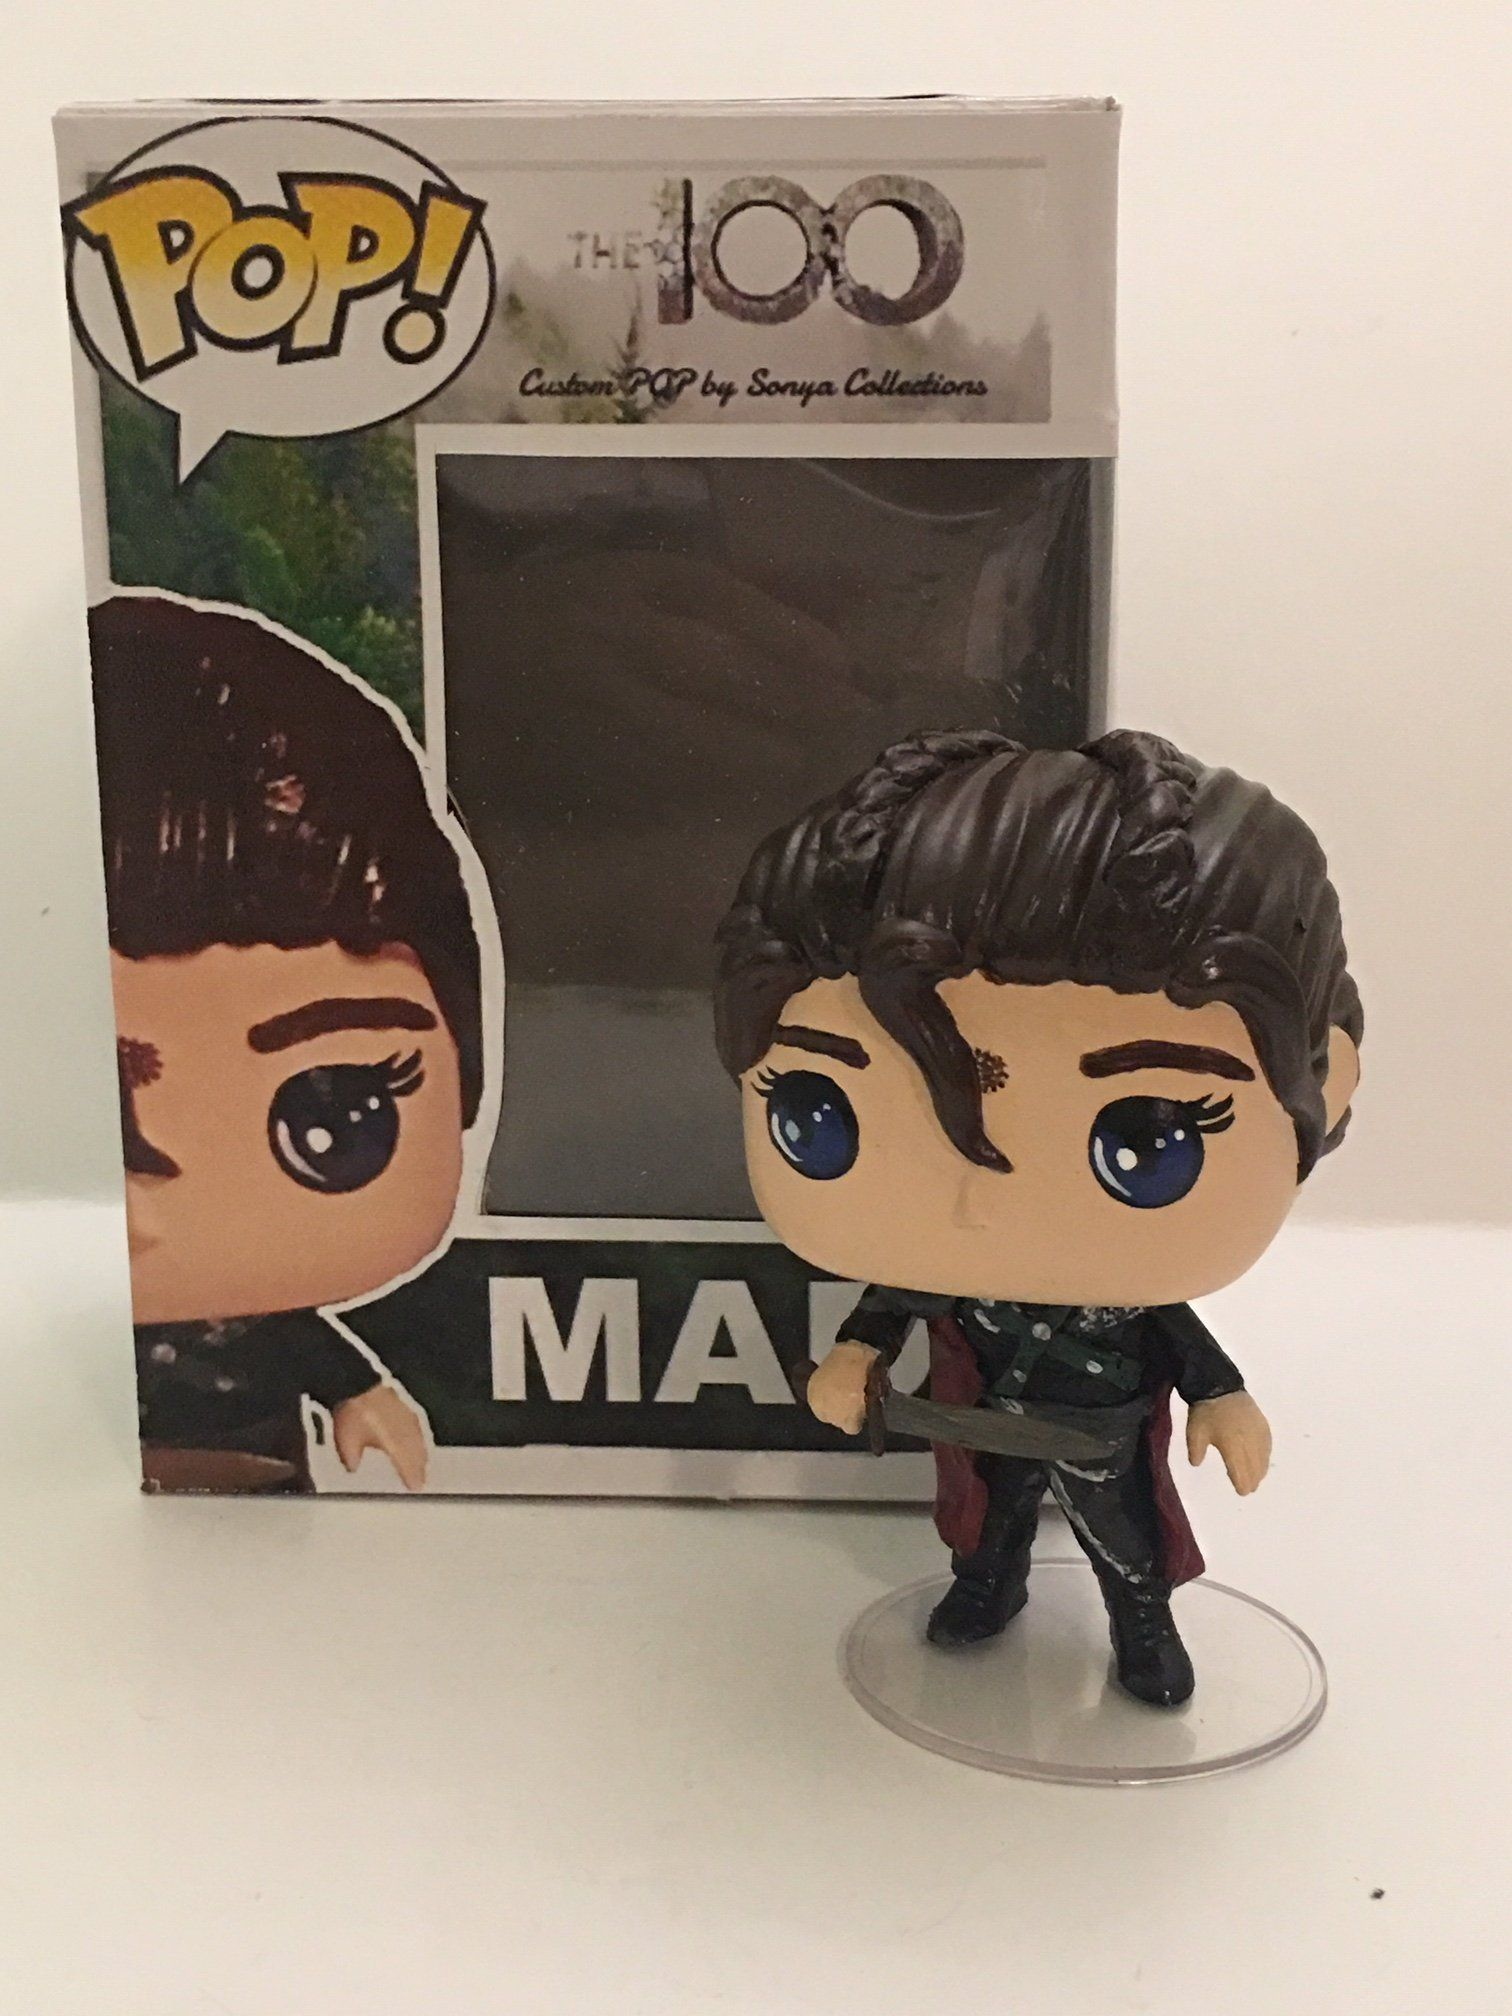 funko pop griffin  The 100 Madi Griffin Custom Funko POP by SonyaCollections on Etsy ...